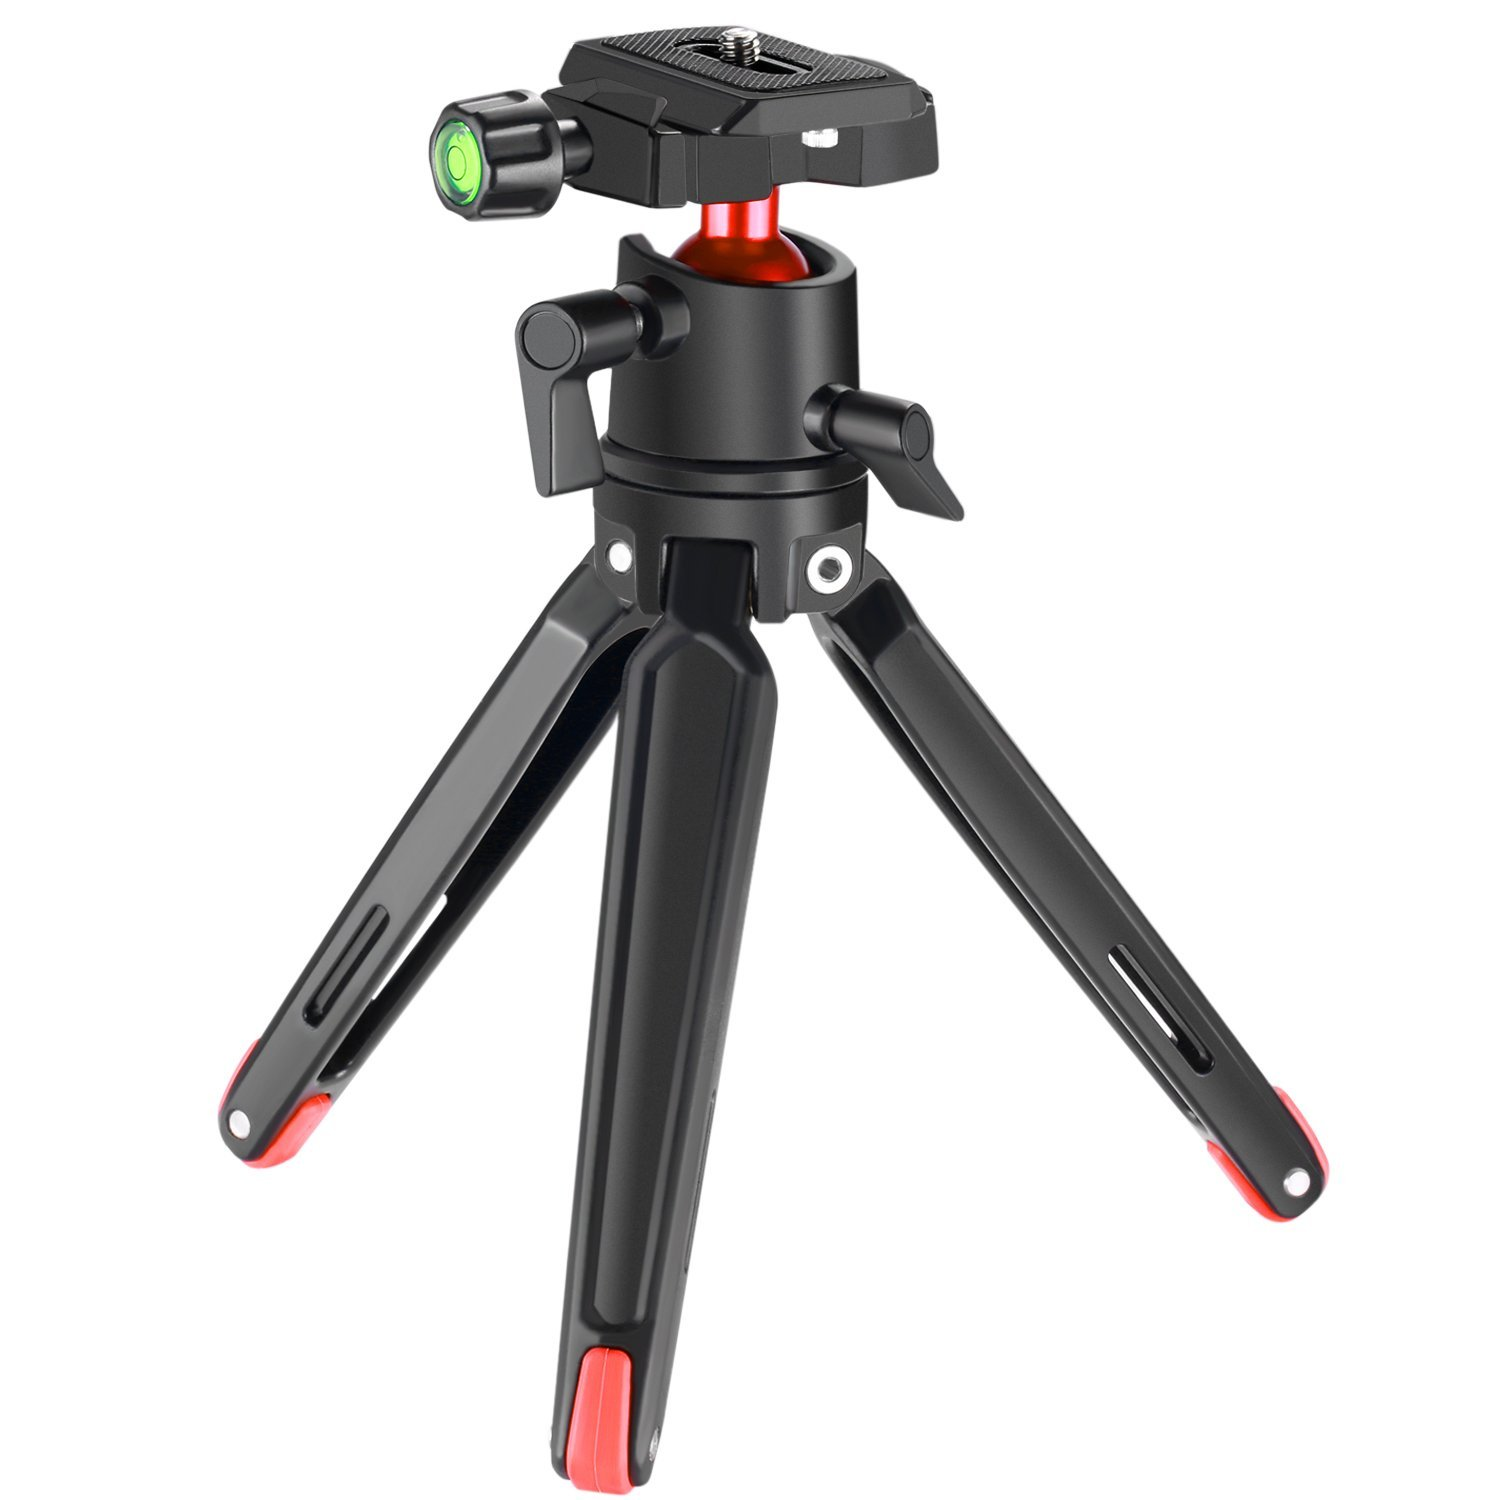 Neewer Aluminum Alloy Desktop Tripod Stand, 14.2 inch/36 centimeters Table Tripod with 1/4-inch Thread 6 pounds/2.7 kilograms Load Capacity for Gopro 5 4 3+ Smartphones Canon Nikon Sony DSLR Cameras